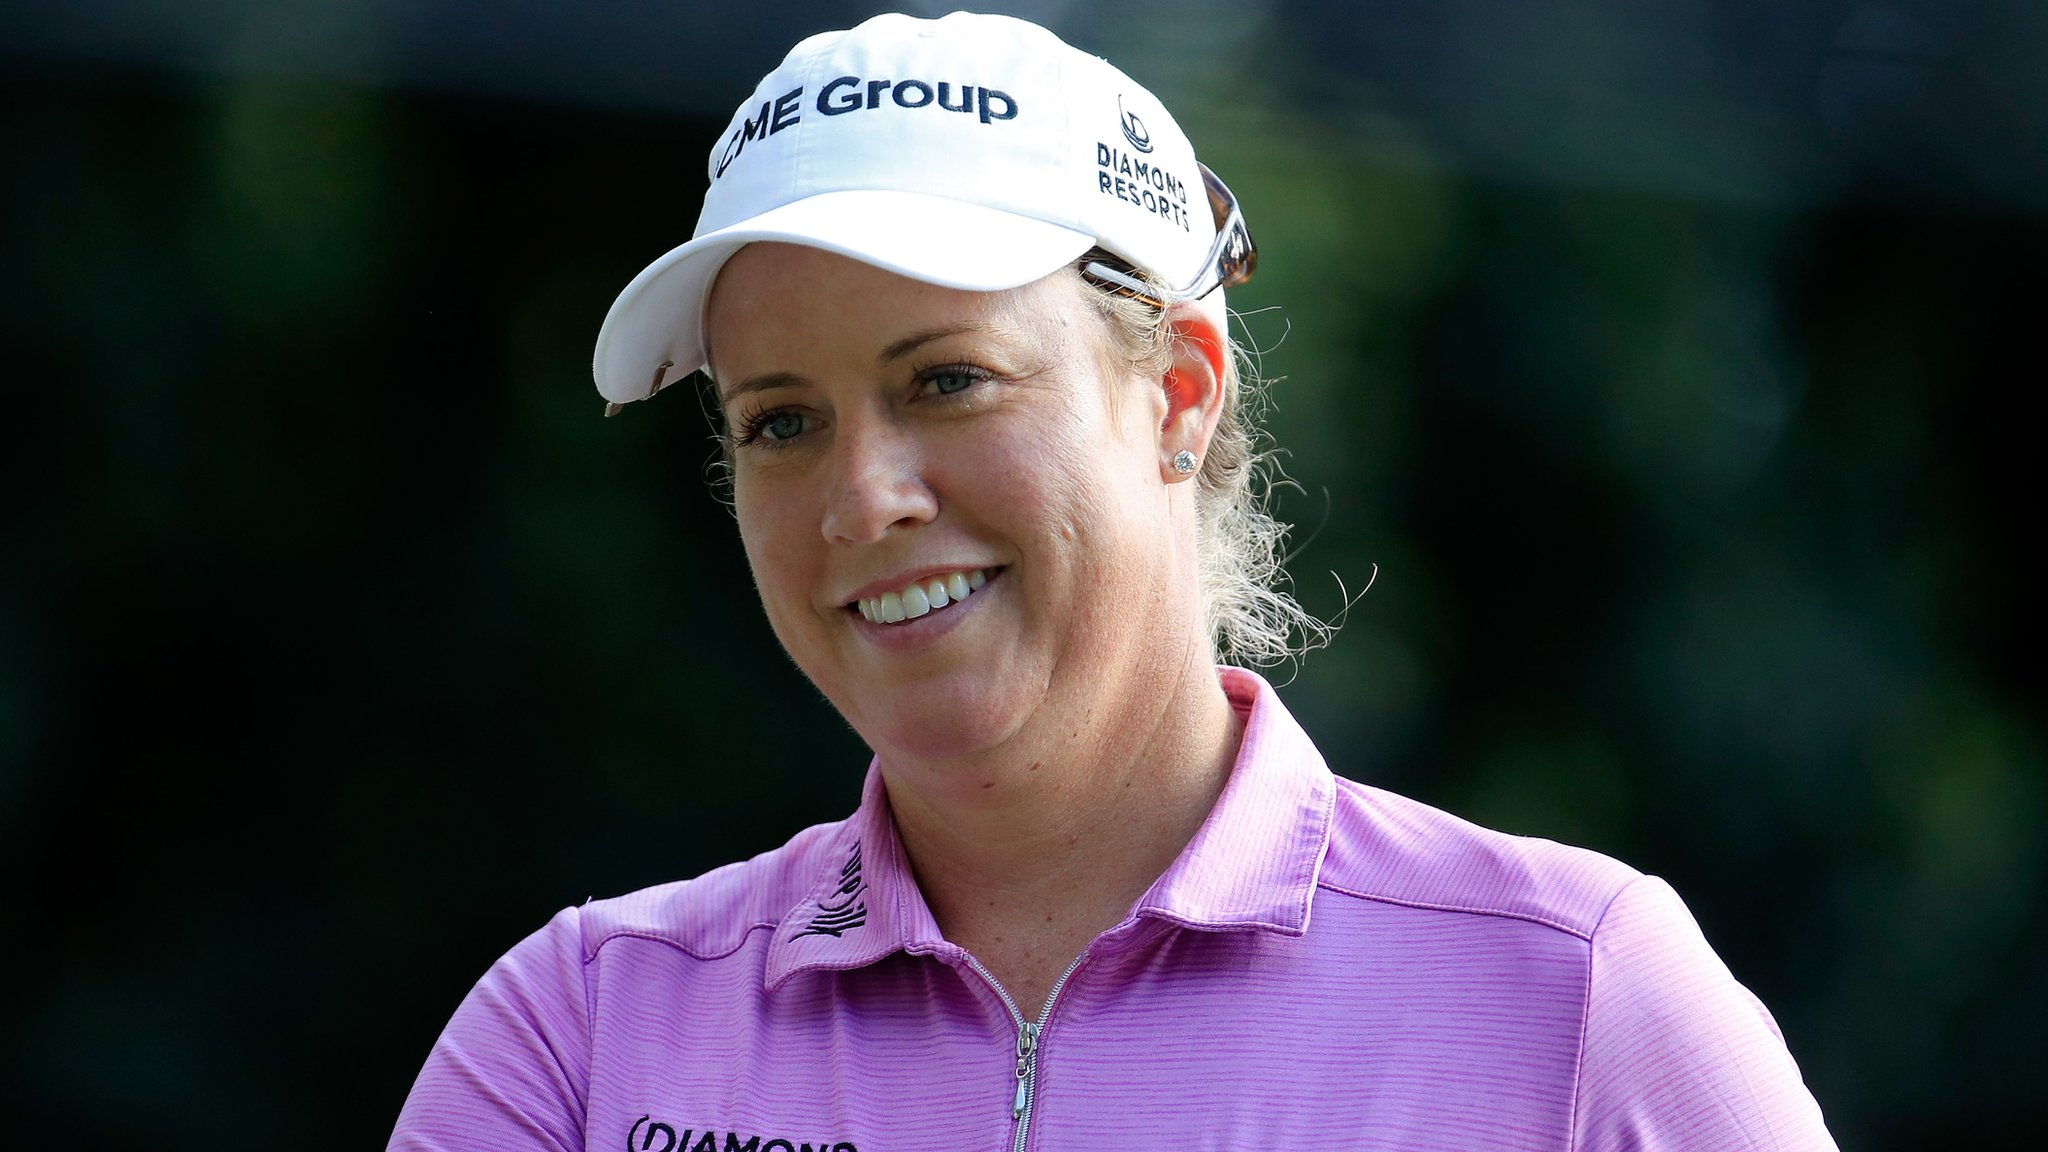 Brittany Lincicome misses cut at men's PGA Tour Barbasol Championship in Kentucky